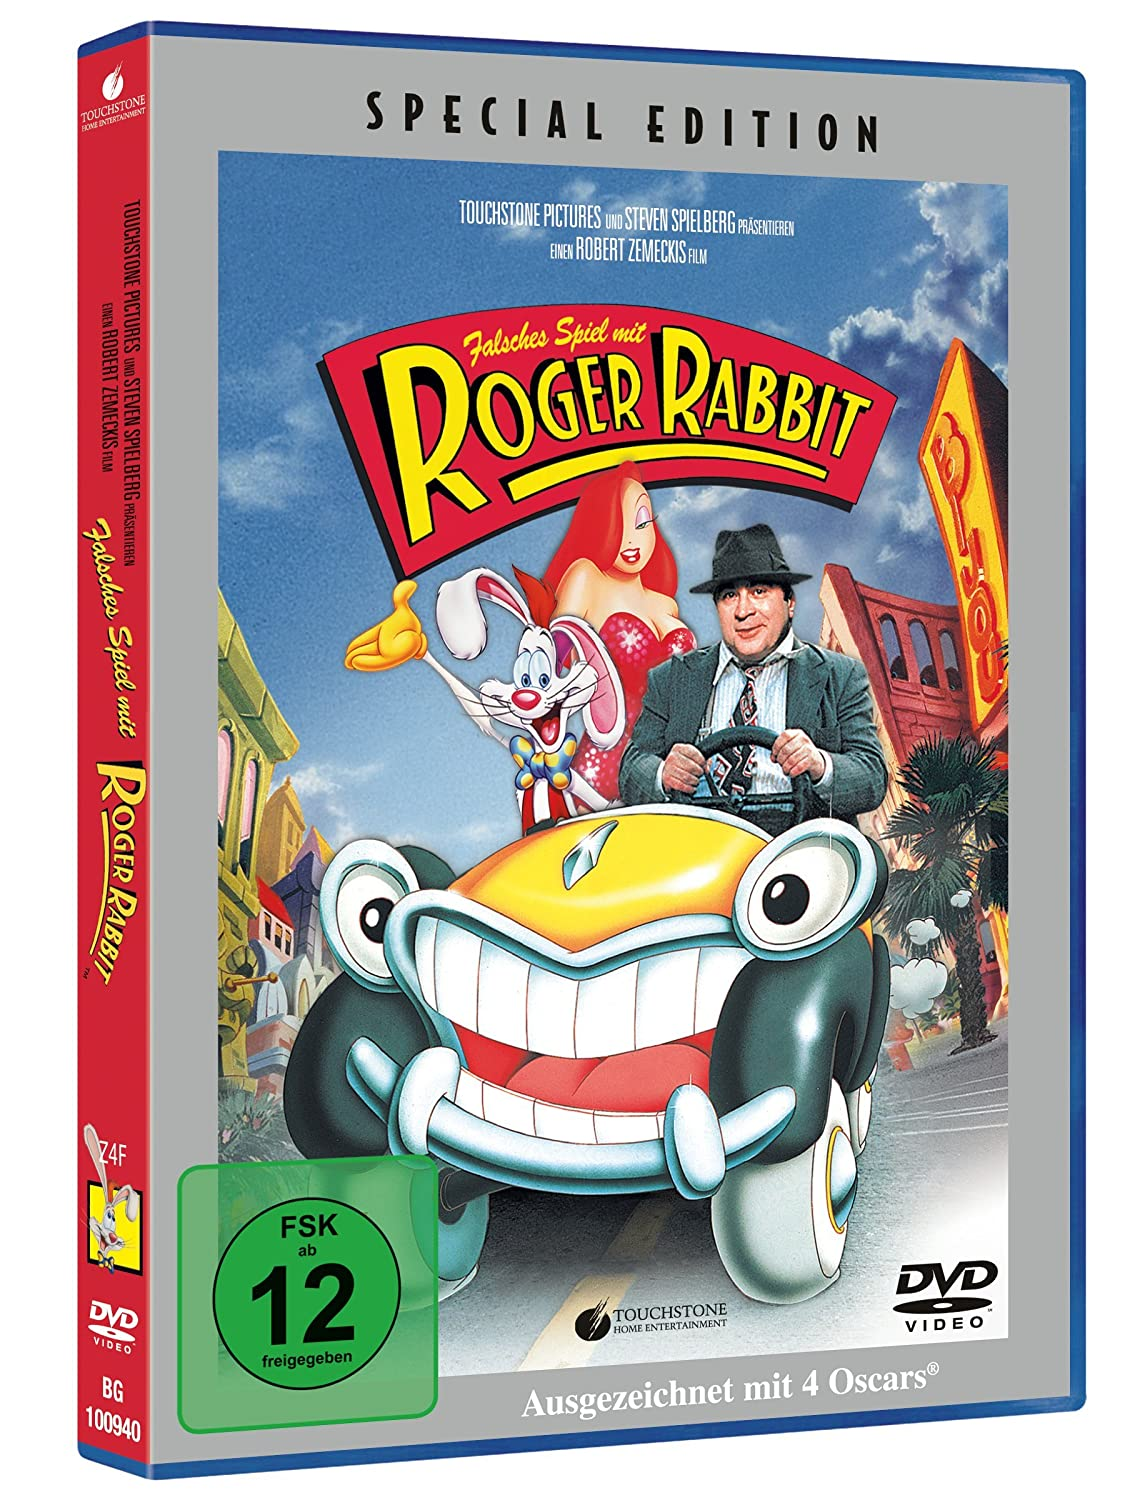 Falsches Spiel mit Roger Rabbit [Special Edition]: Amazon.de: Bob ...